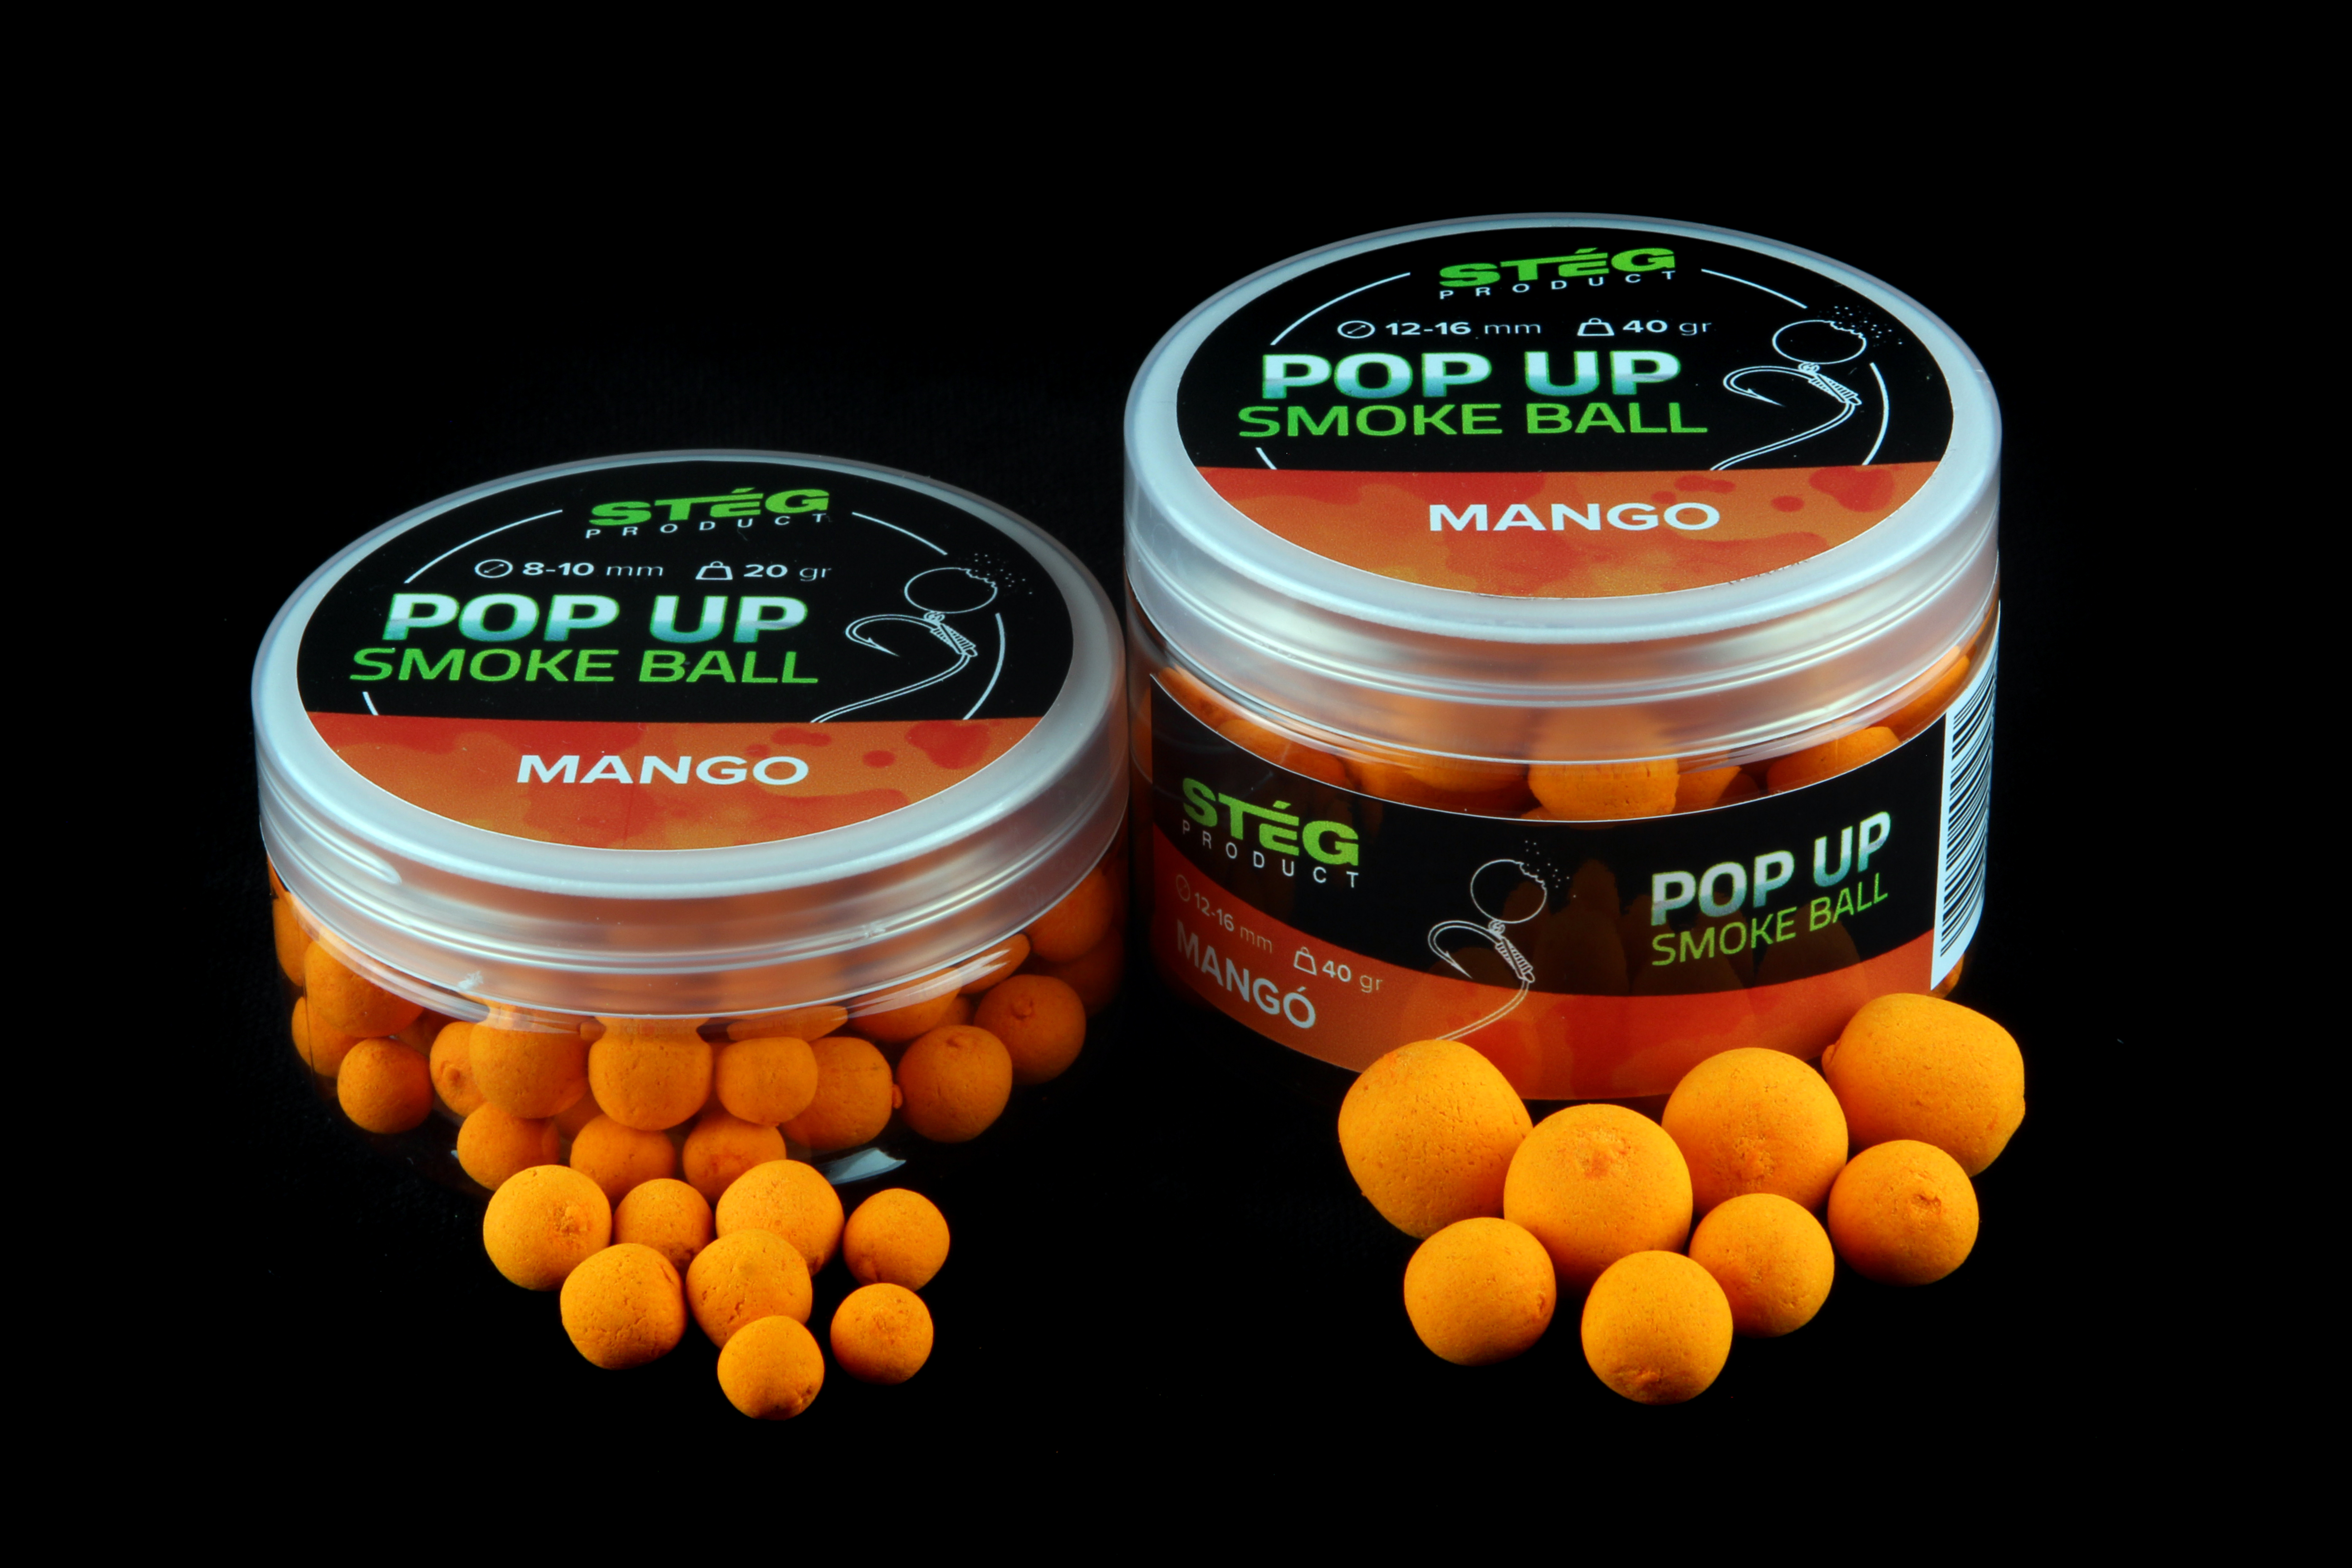 Stég Product Pop Up Smoke Ball 8-10mm MANGO